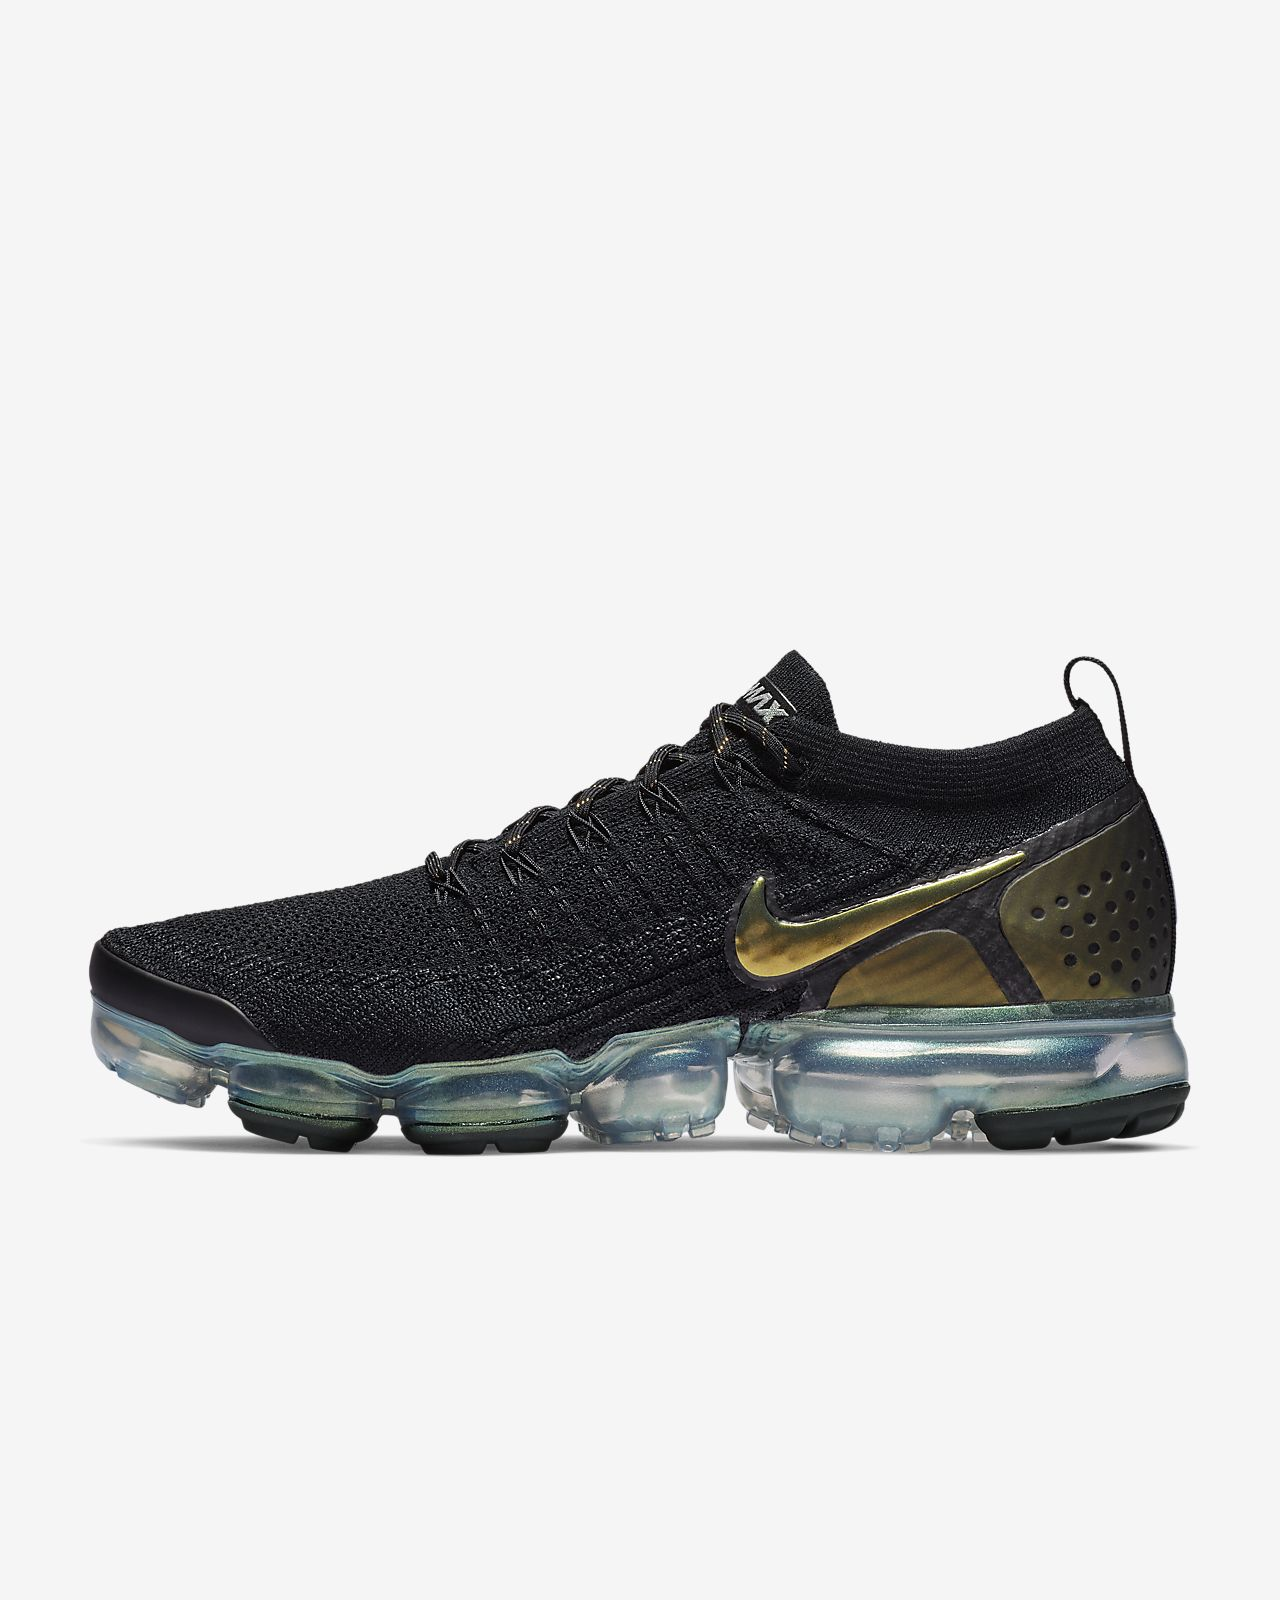 sale retailer c1725 9bd52 Low Resolution Nike Air VaporMax Flyknit 2 Zapatillas Nike Air VaporMax  Flyknit 2 Zapatillas